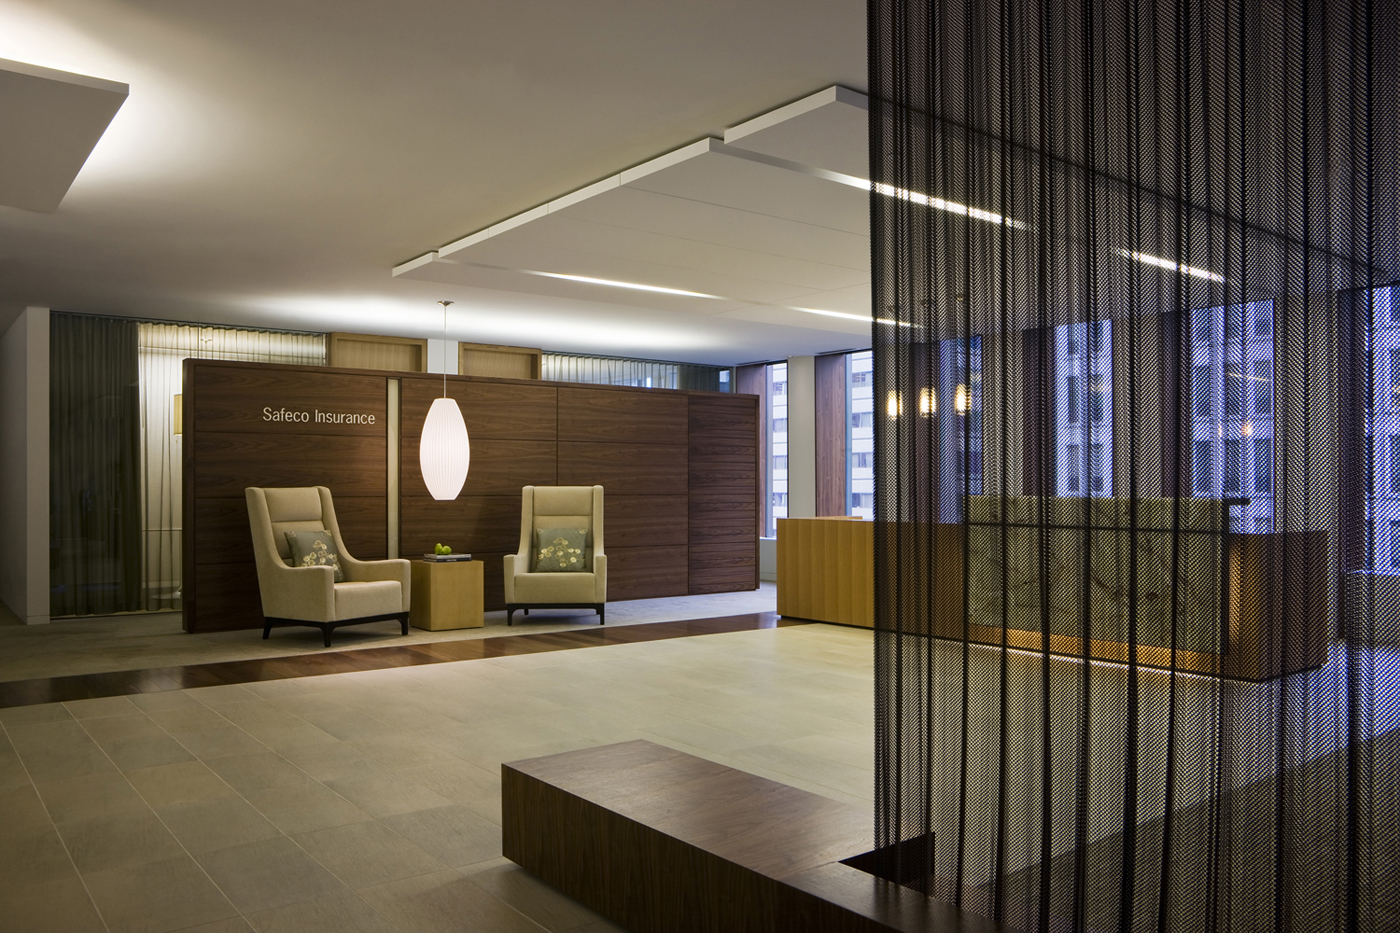 Seattle daily journal of commerce - Office interior design photo gallery ...